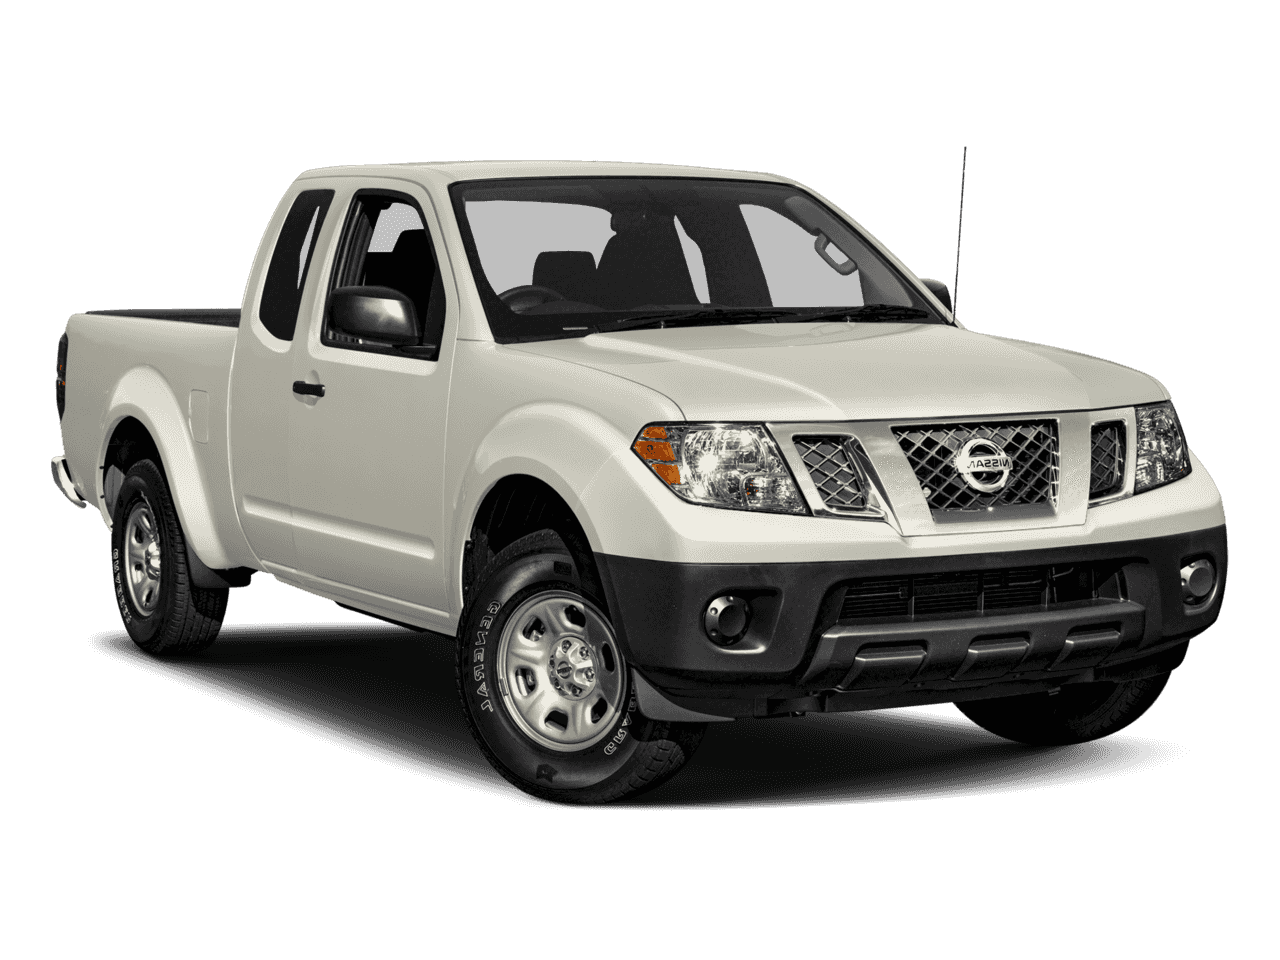 2018 Nissan Frontier S RWD Extended Cab